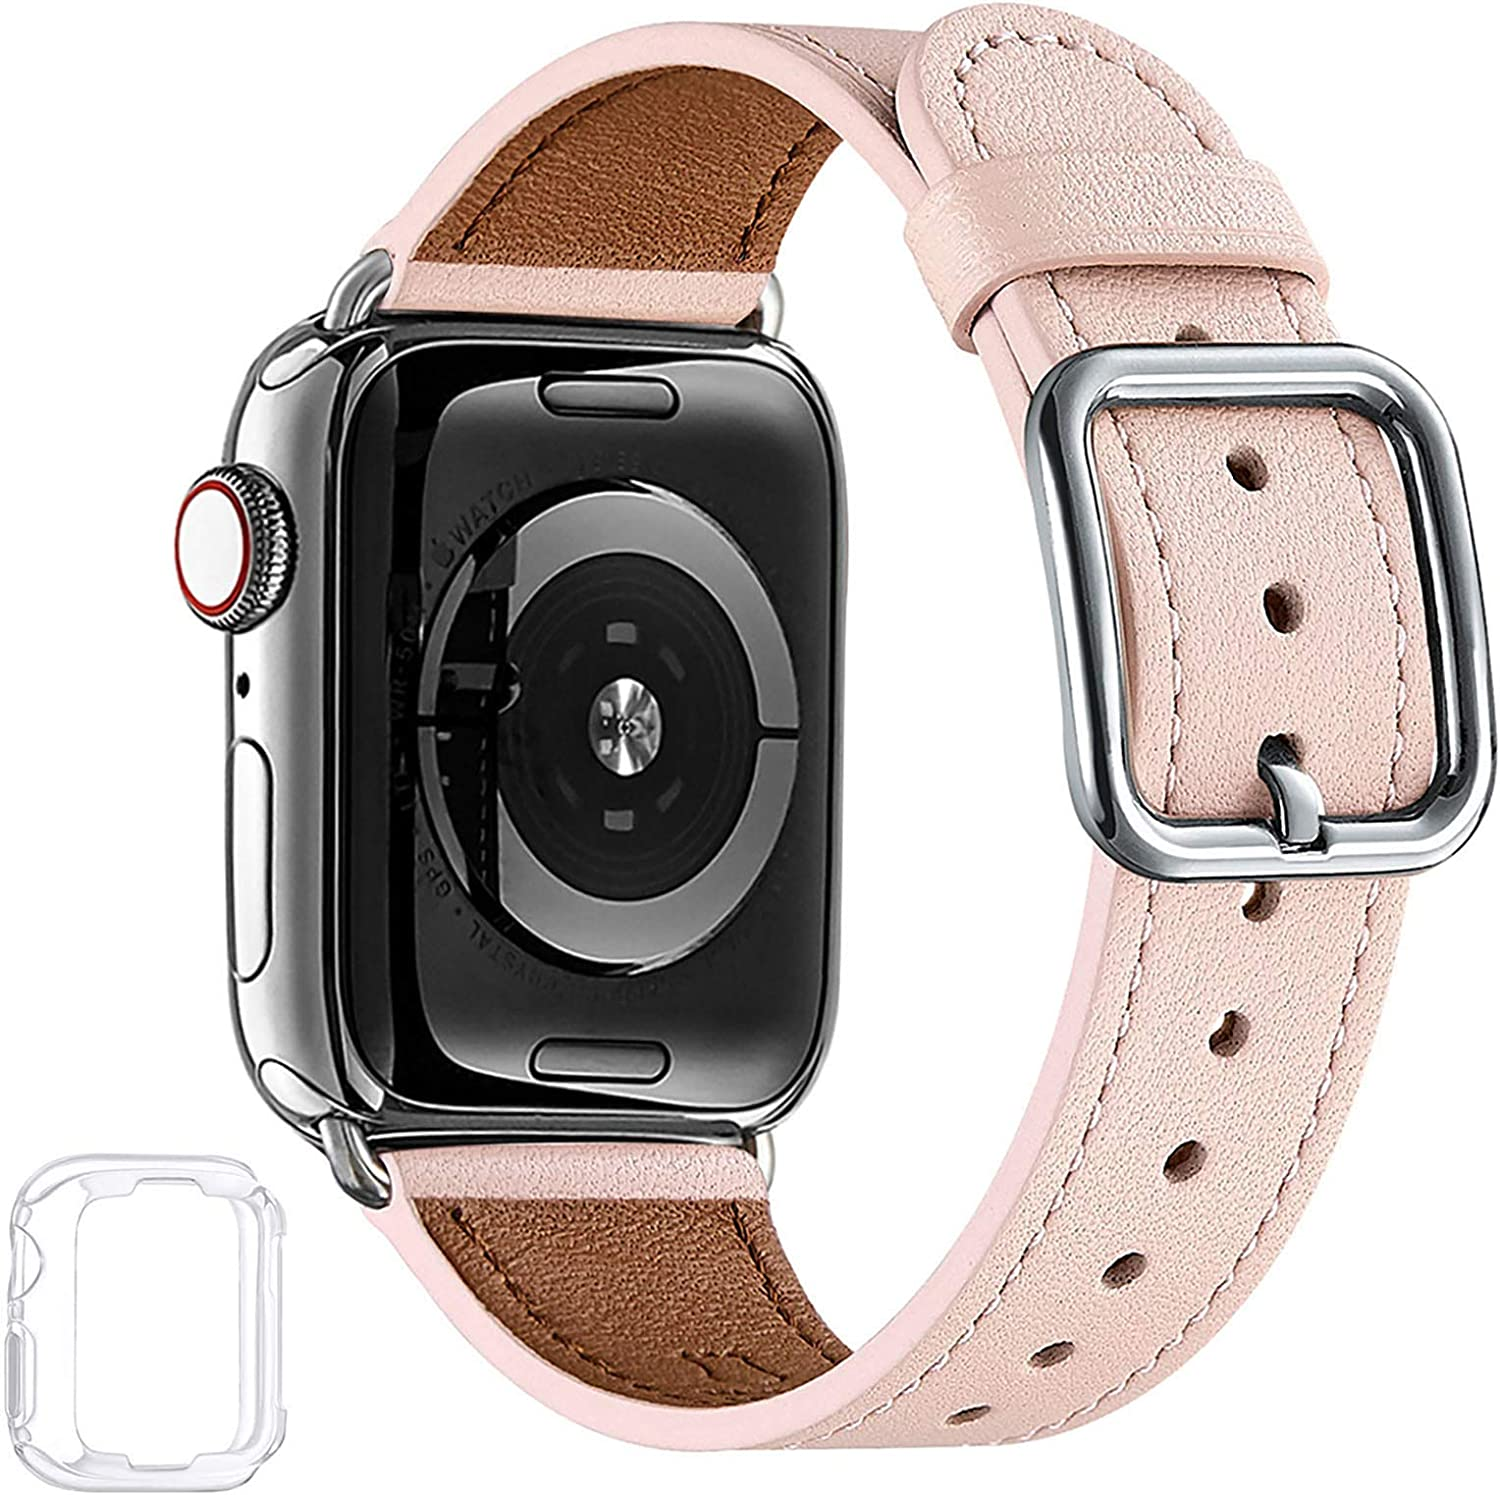 MNBVCXZ Compatible with Apple Watch Band 38mm 40mm 42mm 44mm Women Men Girls Boys Genuine Leather Replacement Strap for iWatch Series 6 5 4 3 2 1 iWatch SE (Pink Sand/Silver, 38mm 40mm)